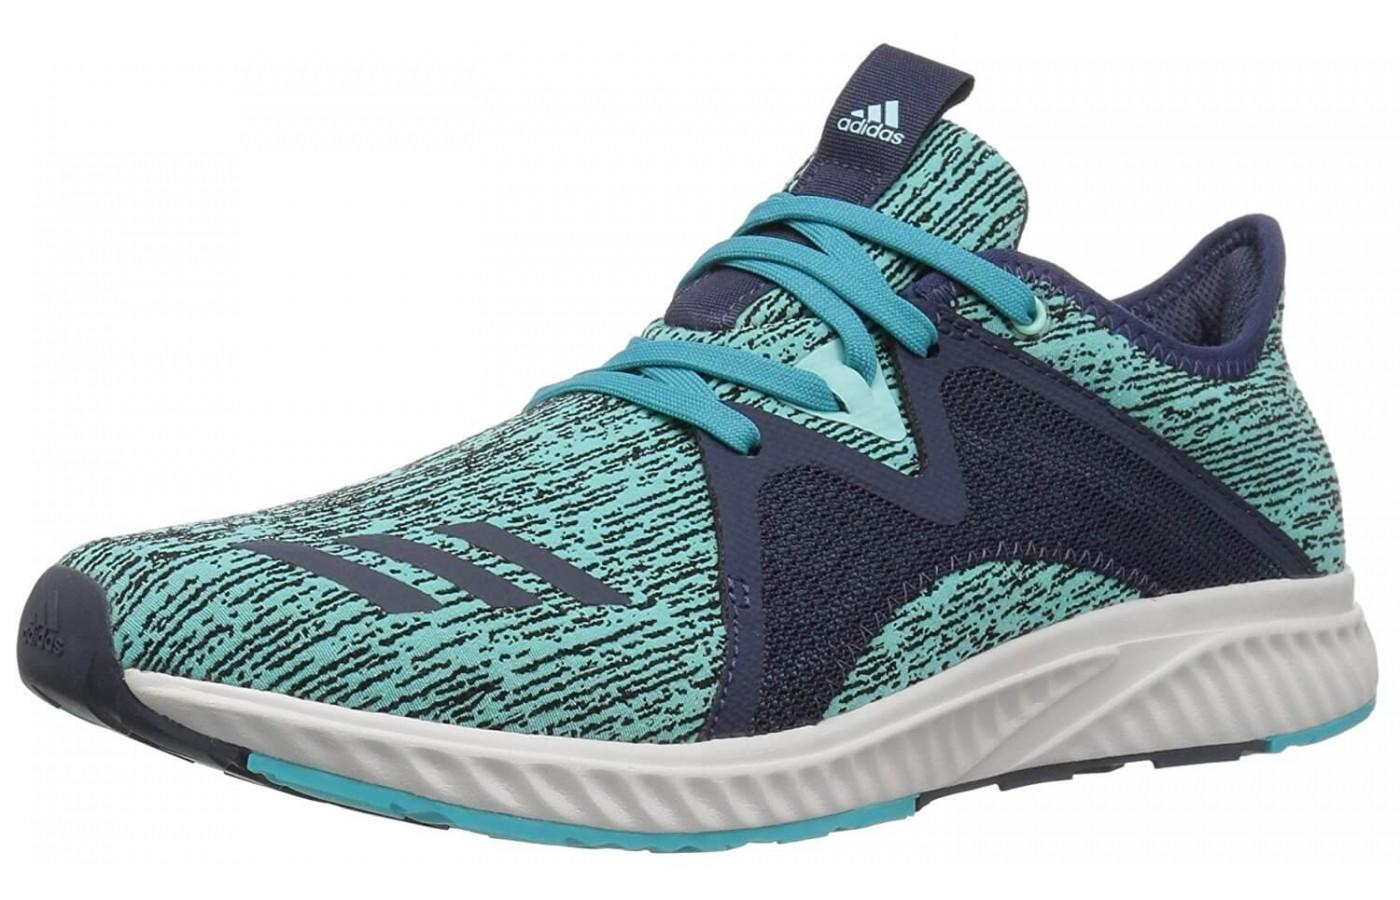 The Adidas Edge Lux 2 is a shoe designed for the fit and needs of a woman